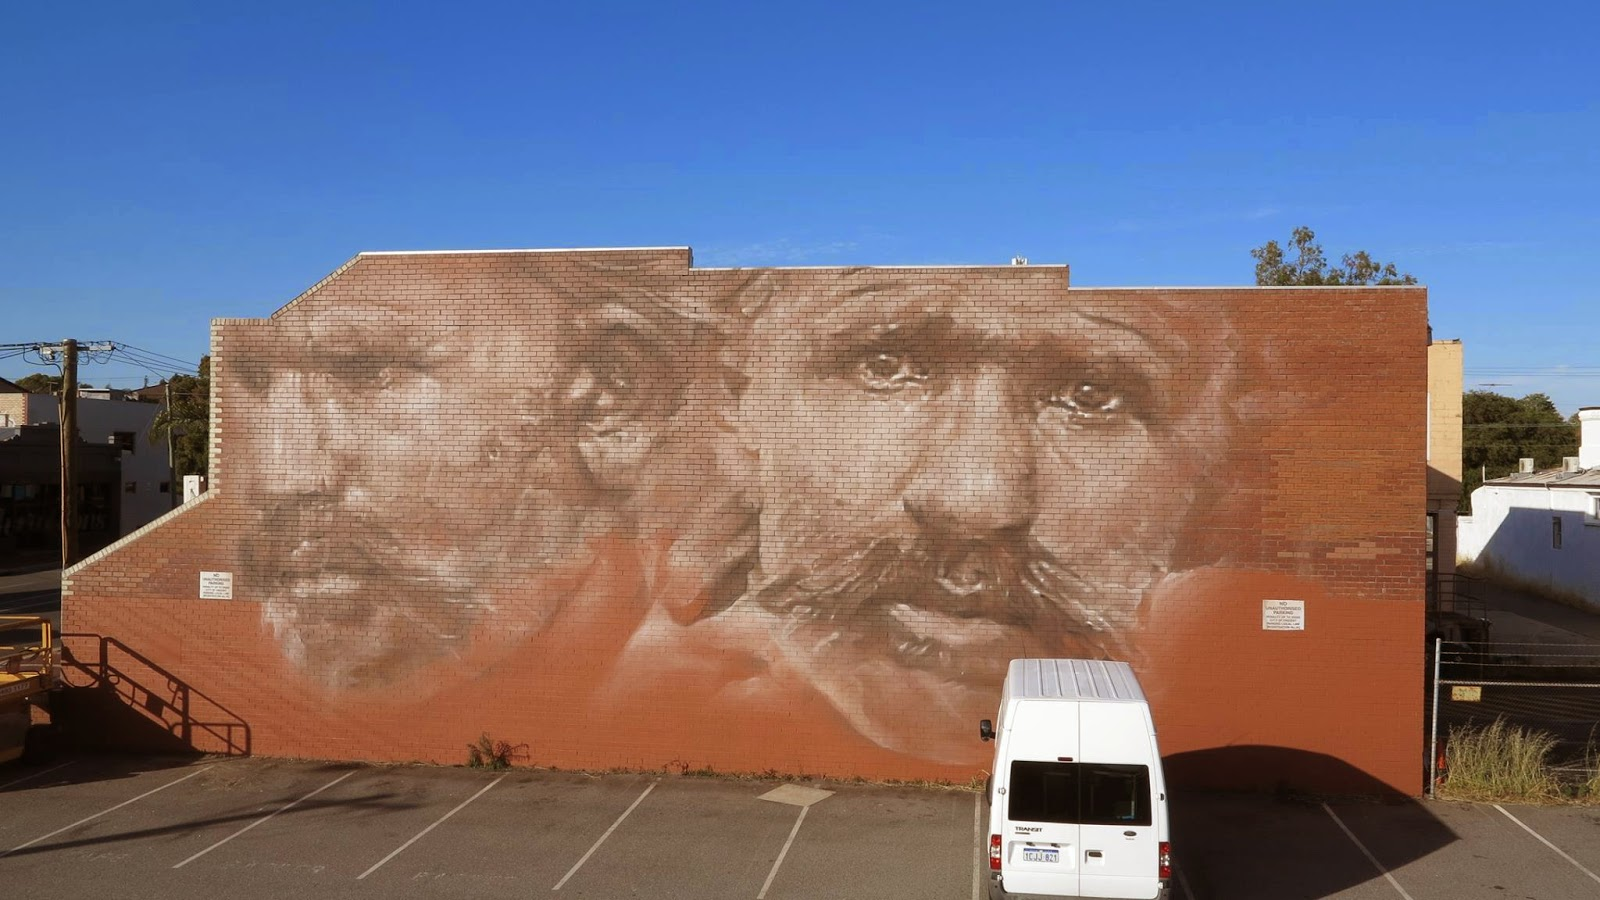 Guido Van Helten is currently in Australia where he spent the last few days working on this massive artwork somewhere on the streets of Perth.